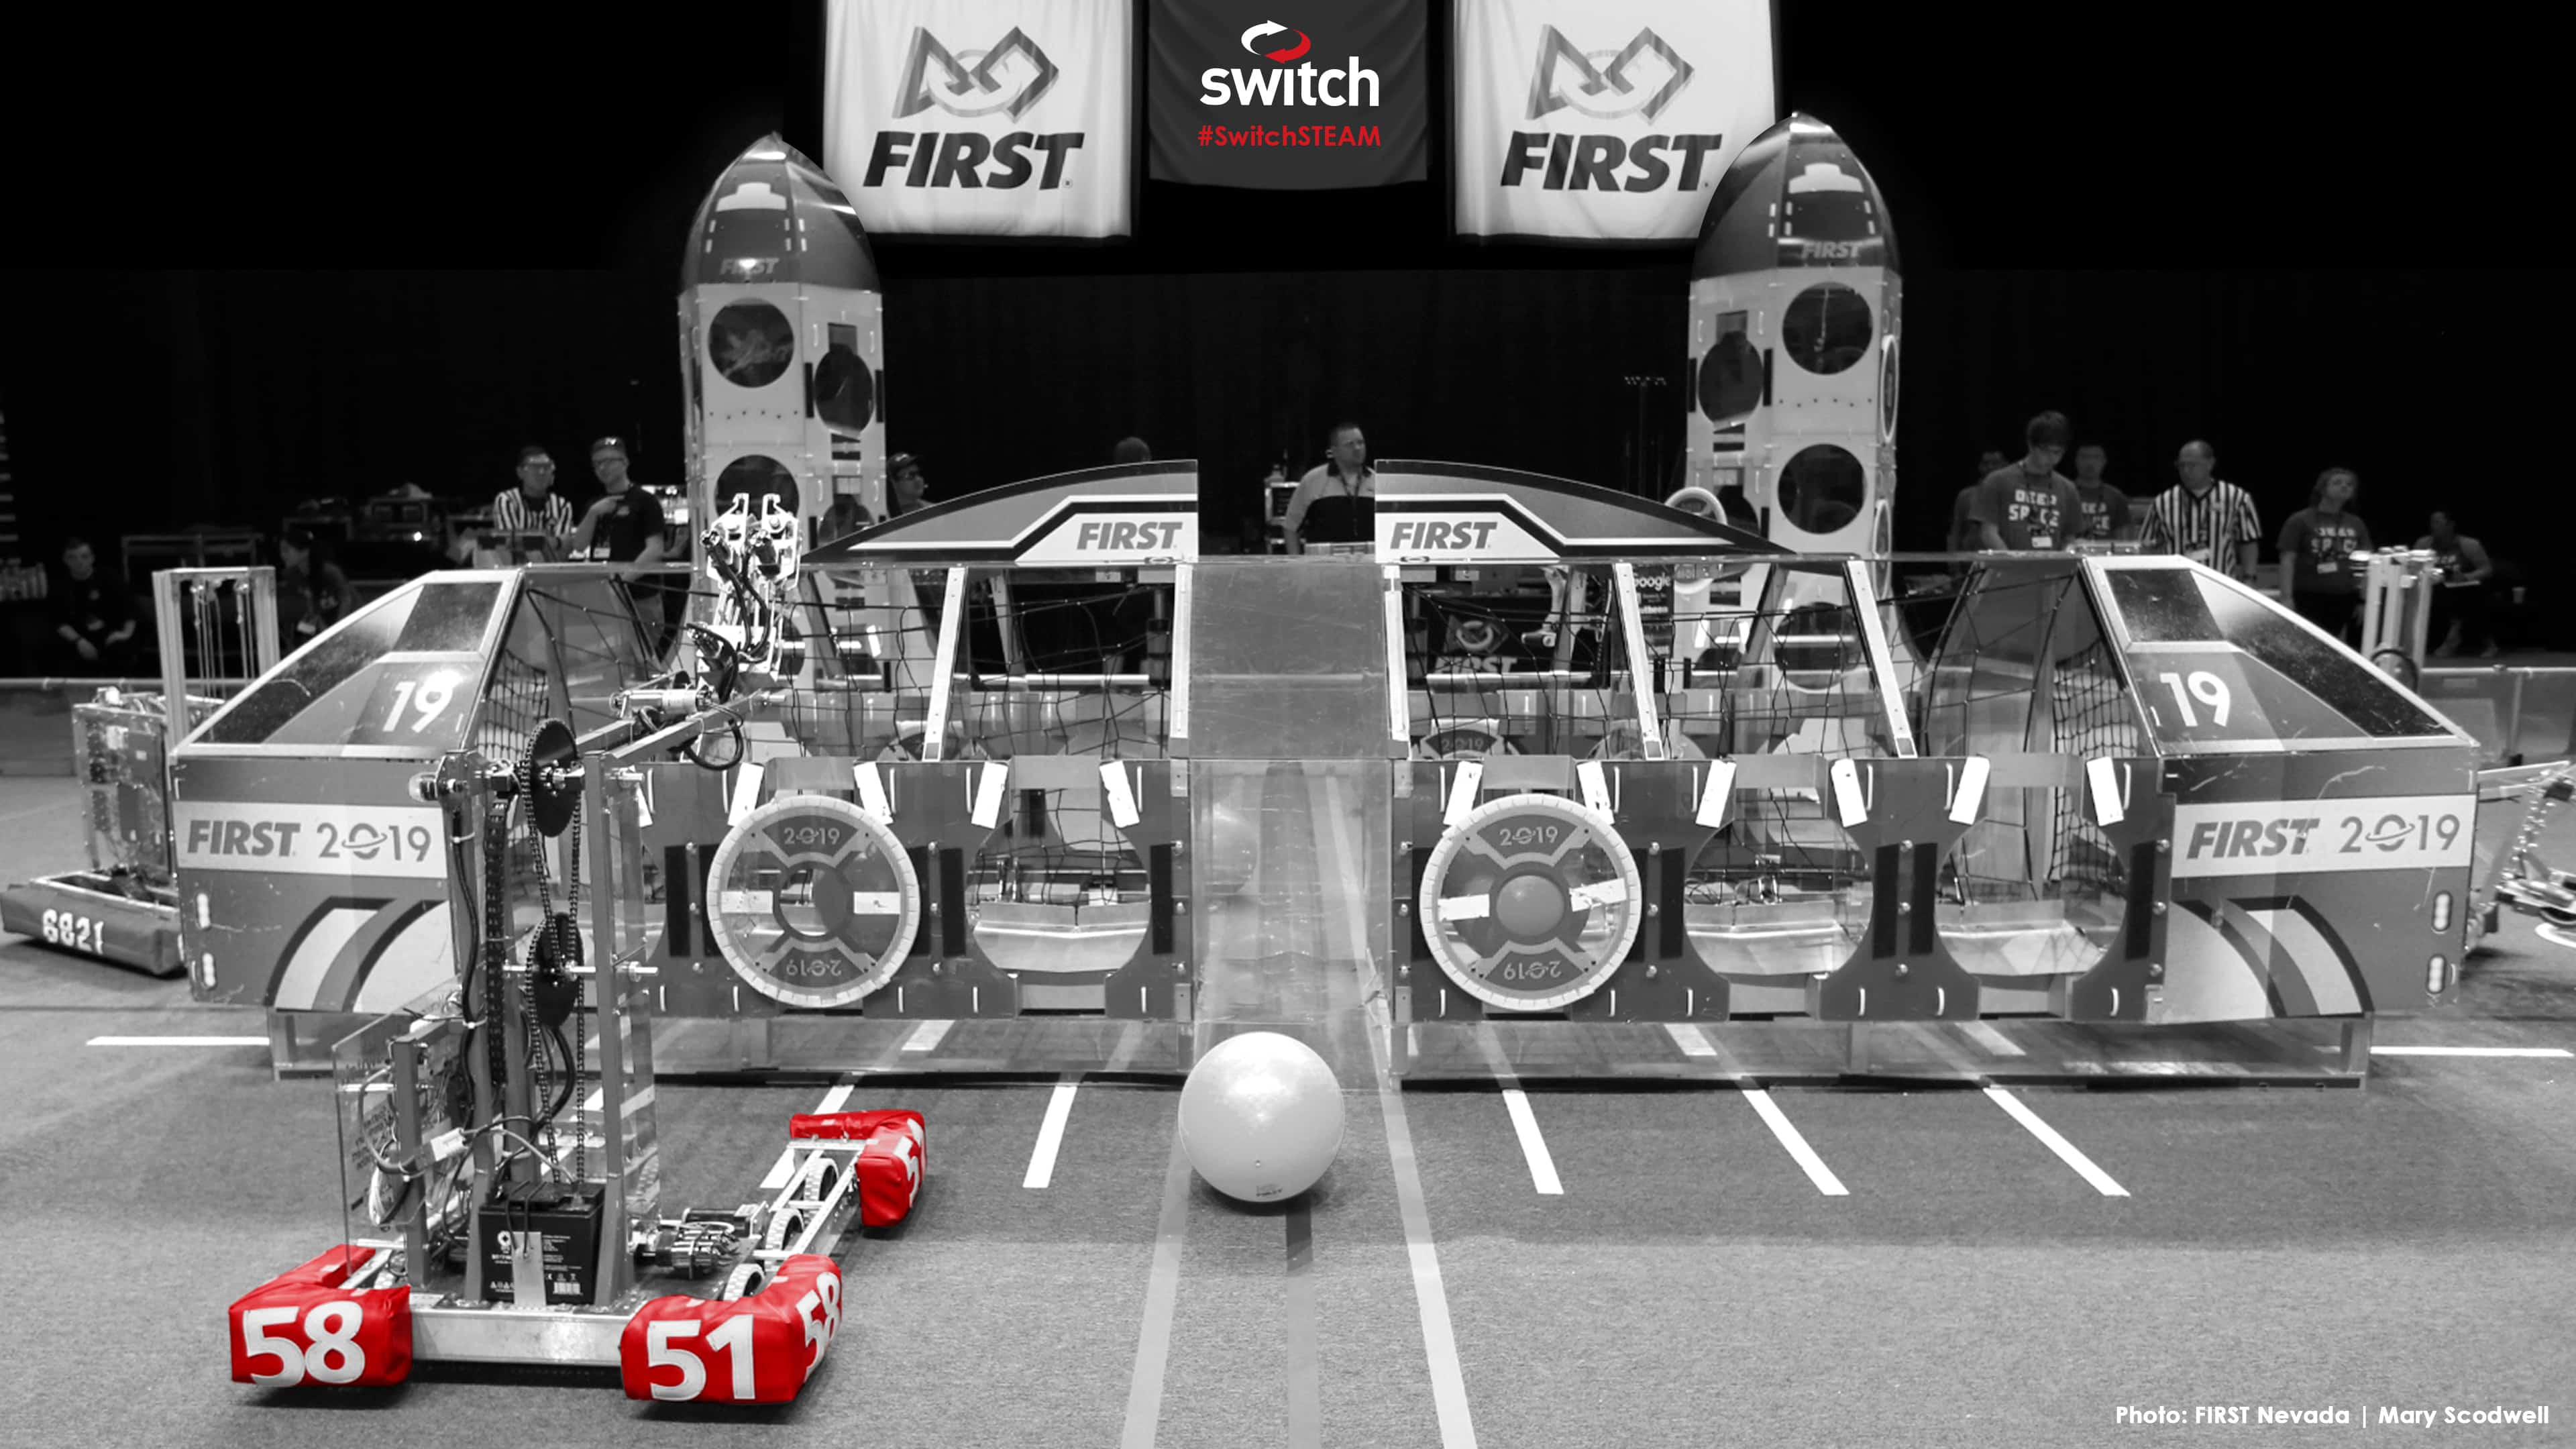 Switch Expands National FIRST<sup><small>®</small></sup> Robotics Partnership with GeorgiaFIRST<sup><small>®</small></sup> Symposium and FIRST<sup><small>®</small></sup> Tech Challenge Kickoff Sponsorship